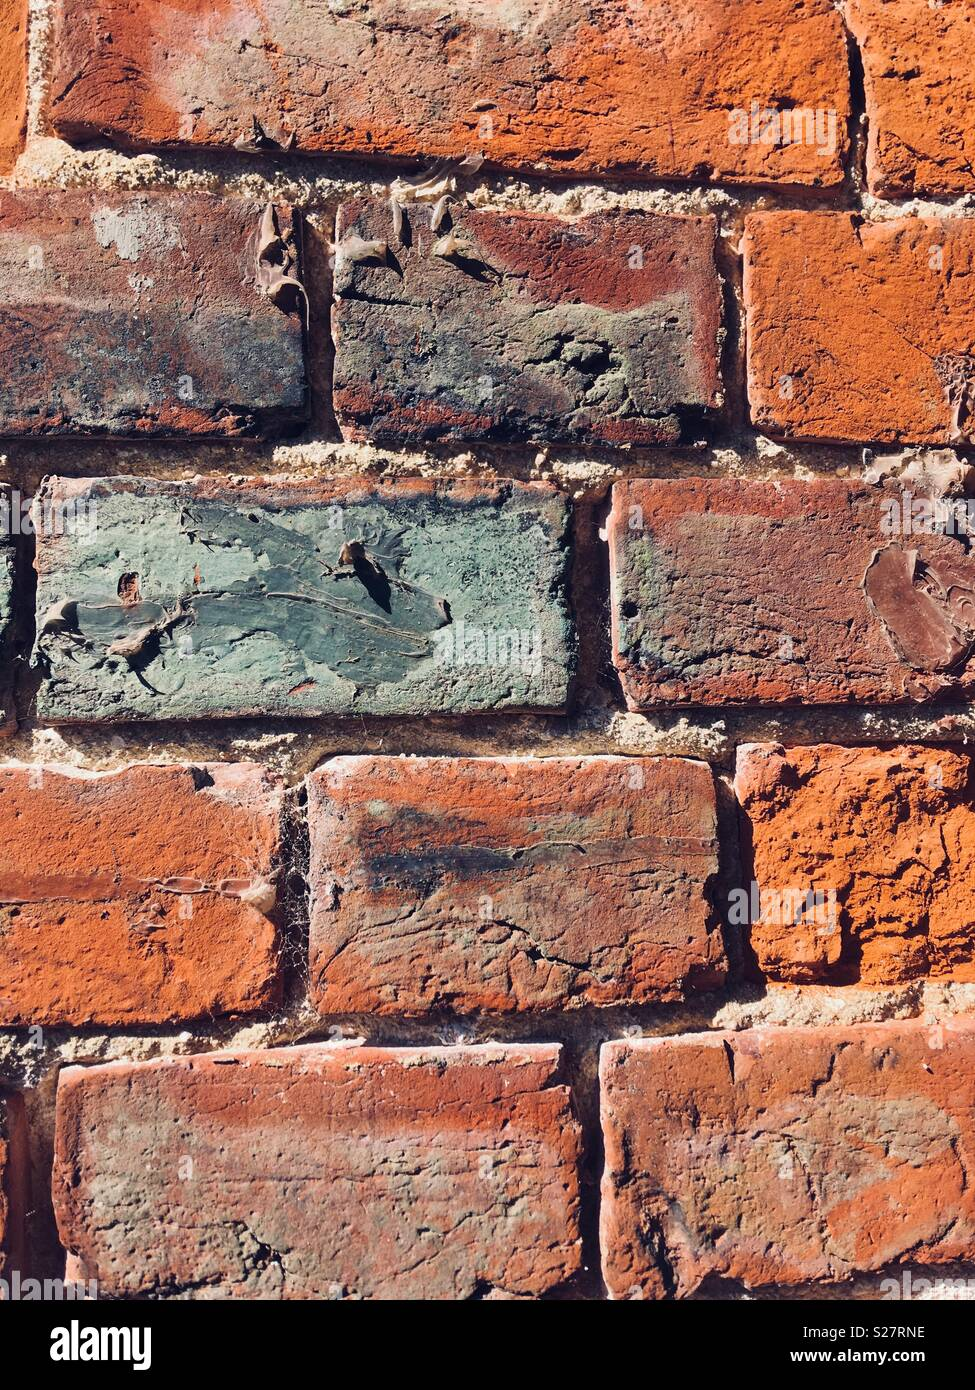 Victorian brickwork indicating its age with marks, damage and added paint - Stock Image